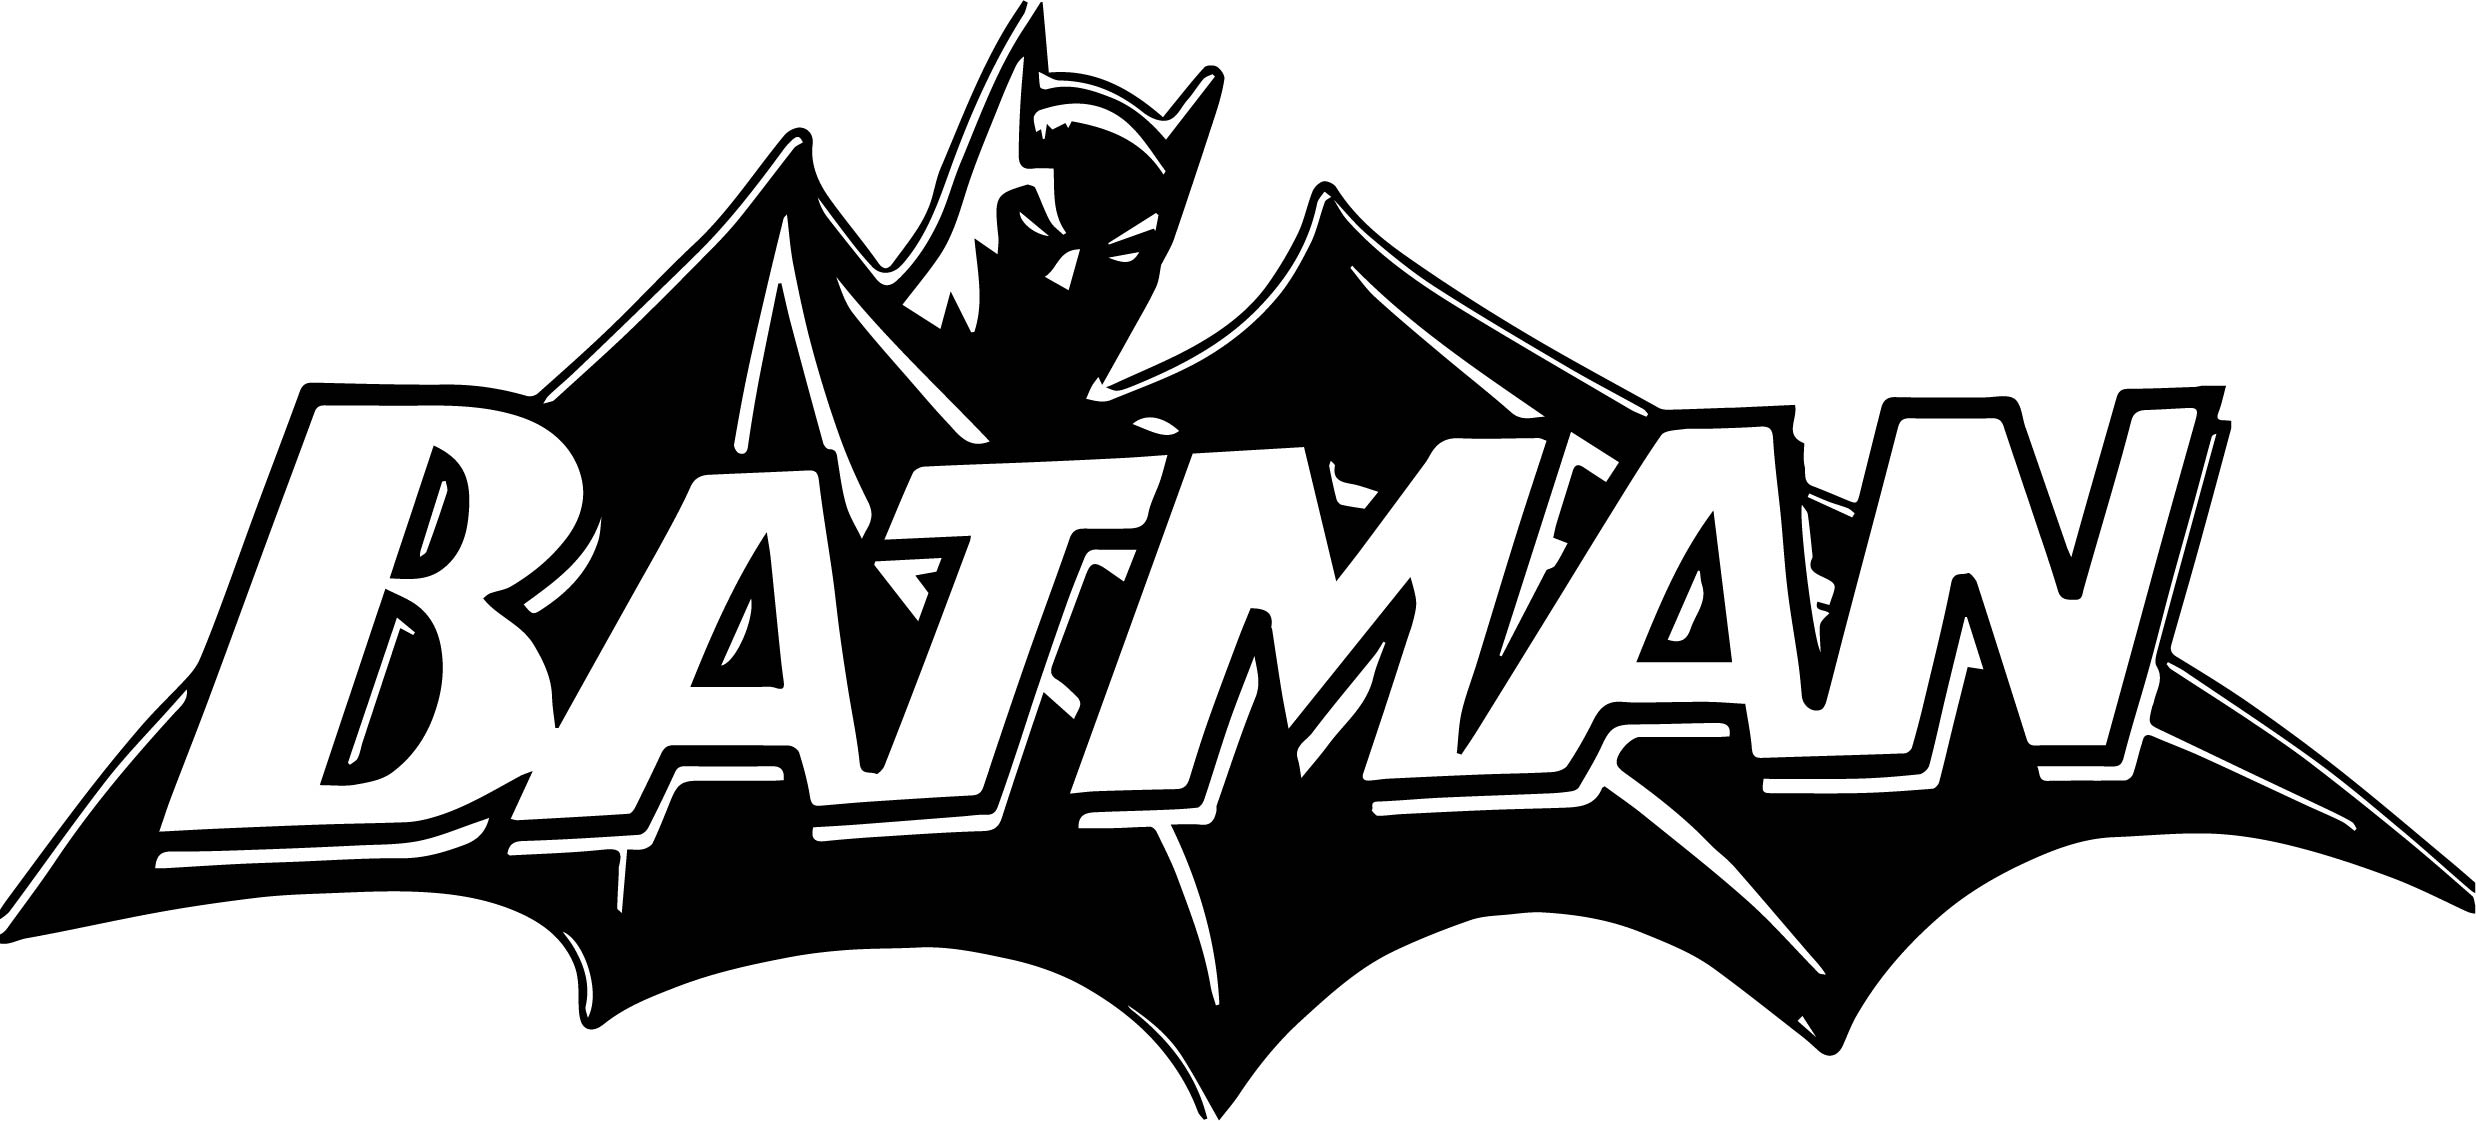 Batman Logo Coloring Pages - Black Batman Logo Coloring Page